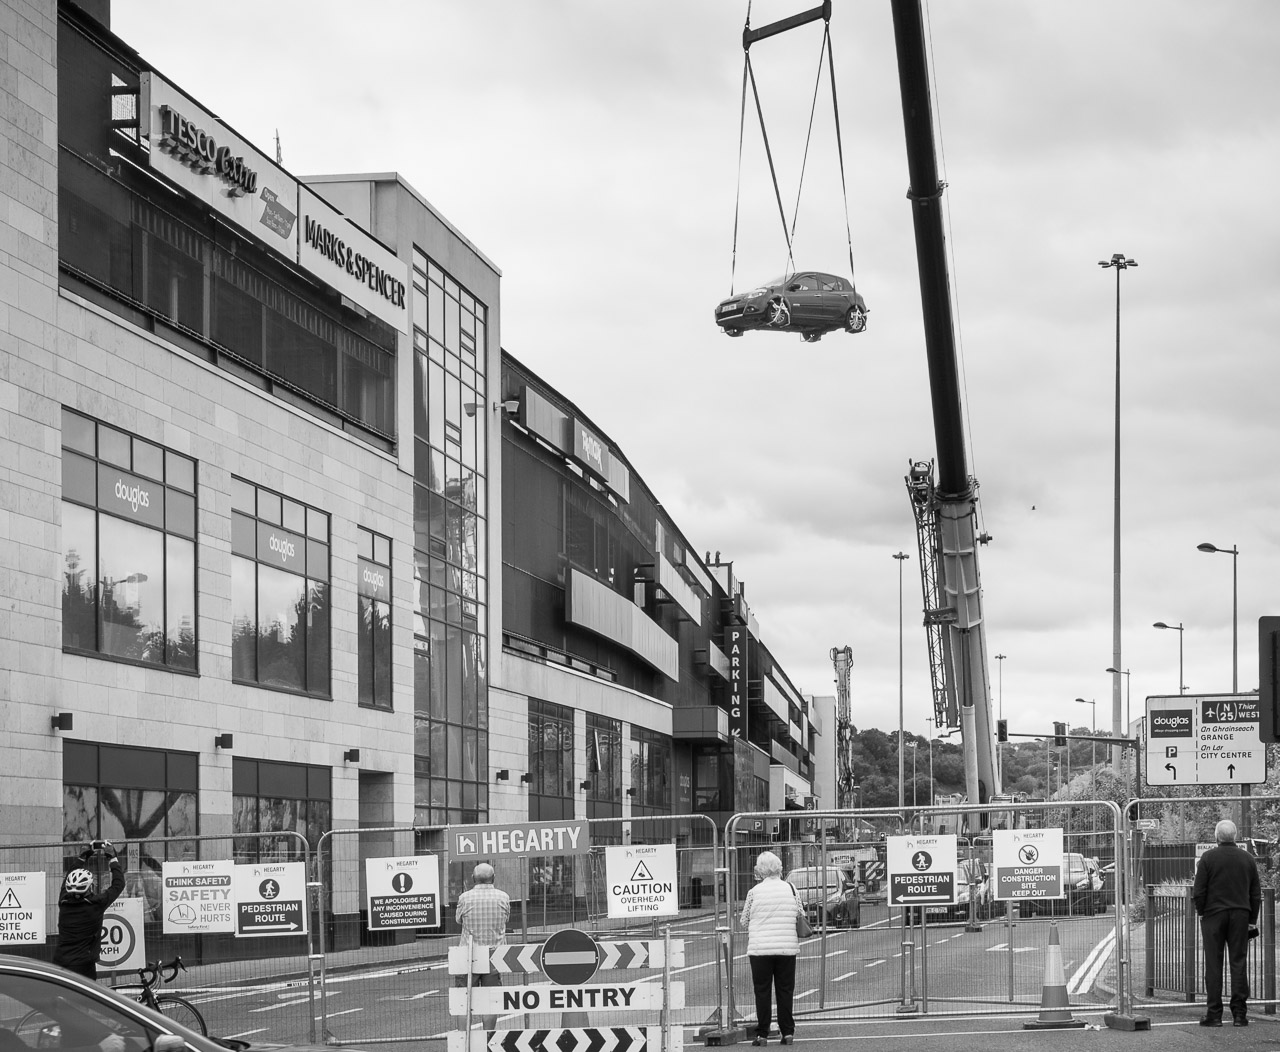 Removal of cars from Douglas Village Shopping Centre car park